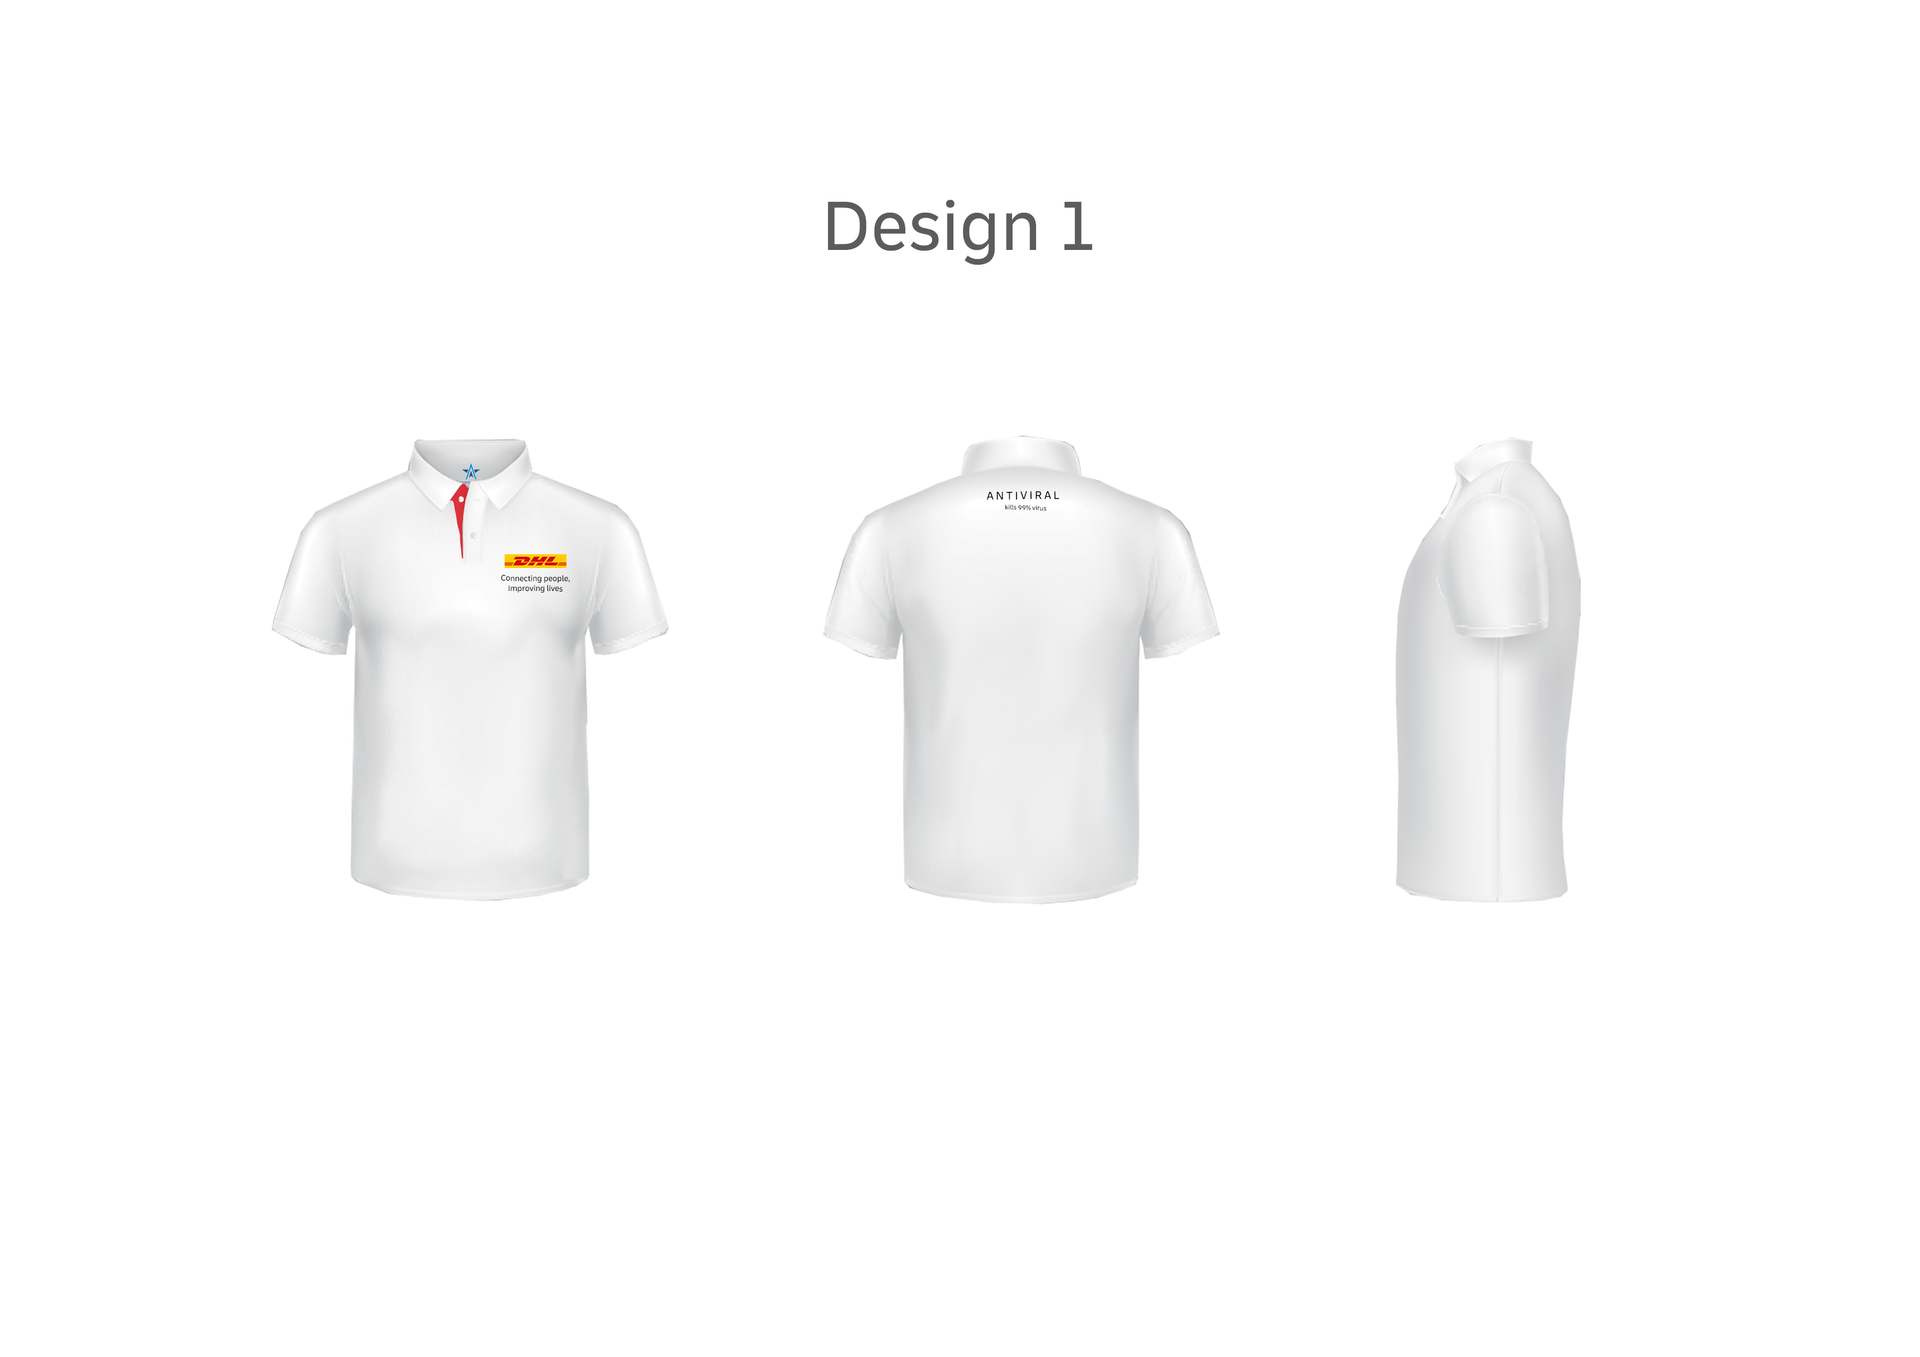 7 DHL final_Page_05.png